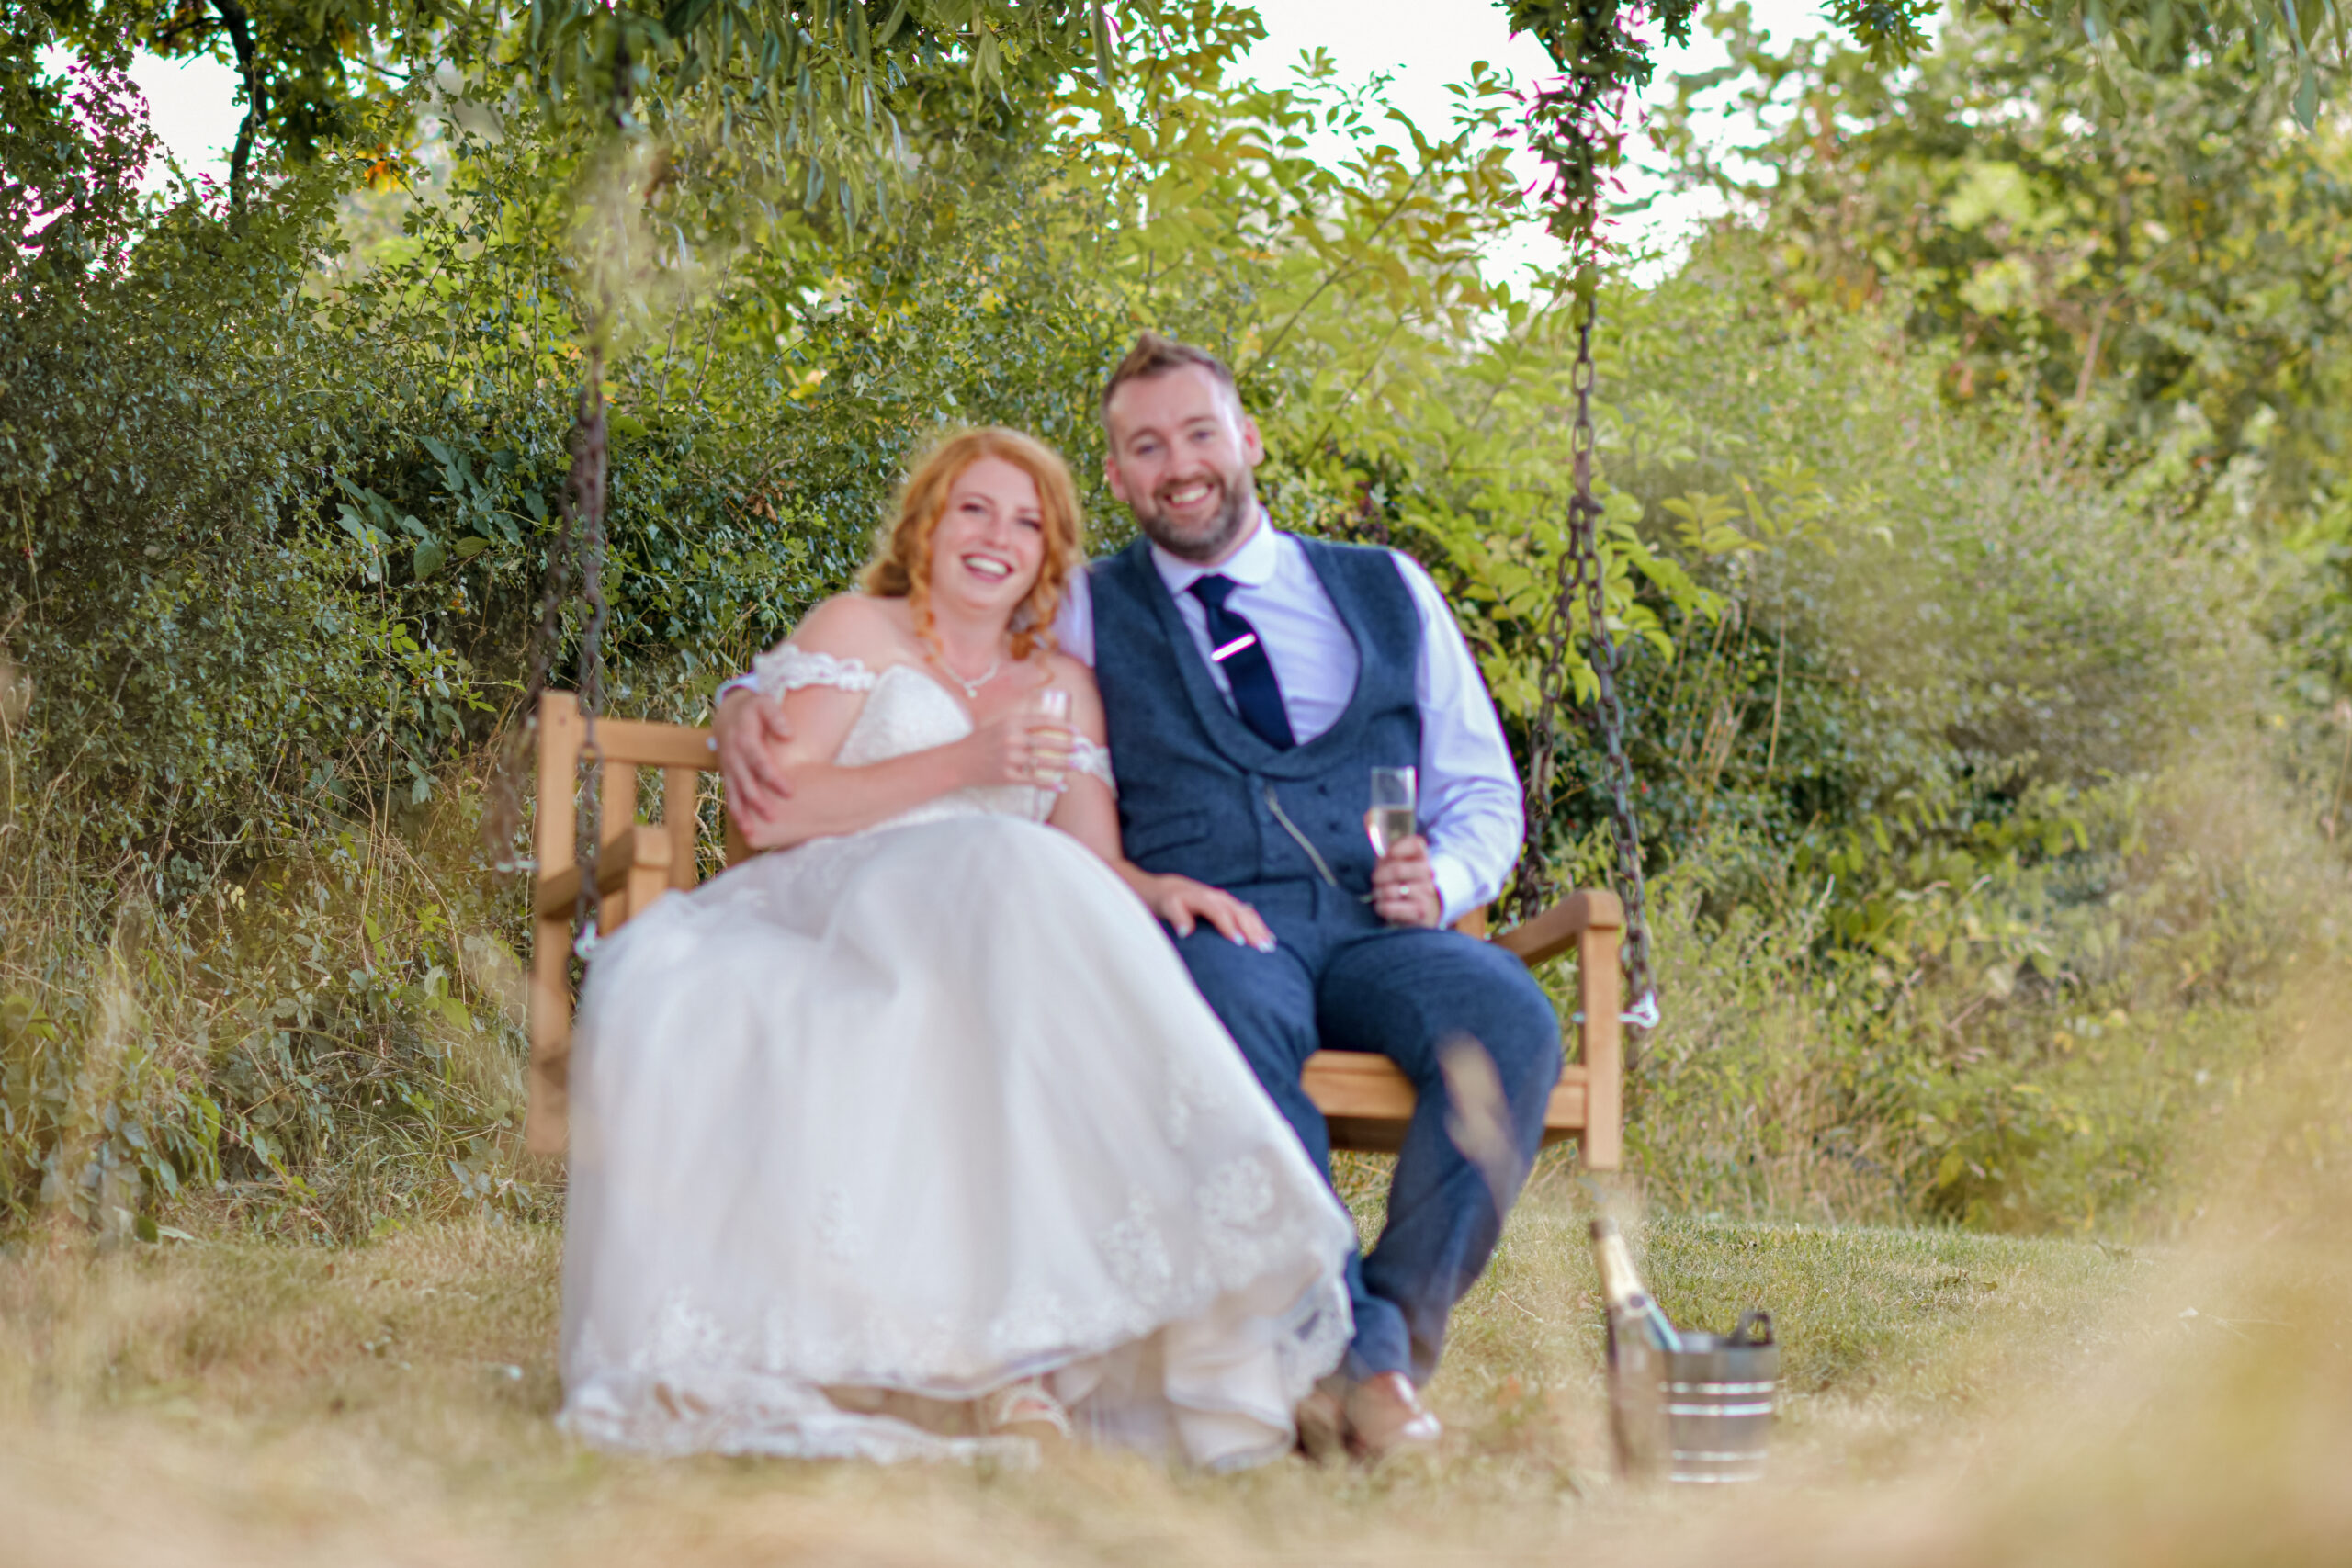 Wedding Photography on the Swing at Wootton Park